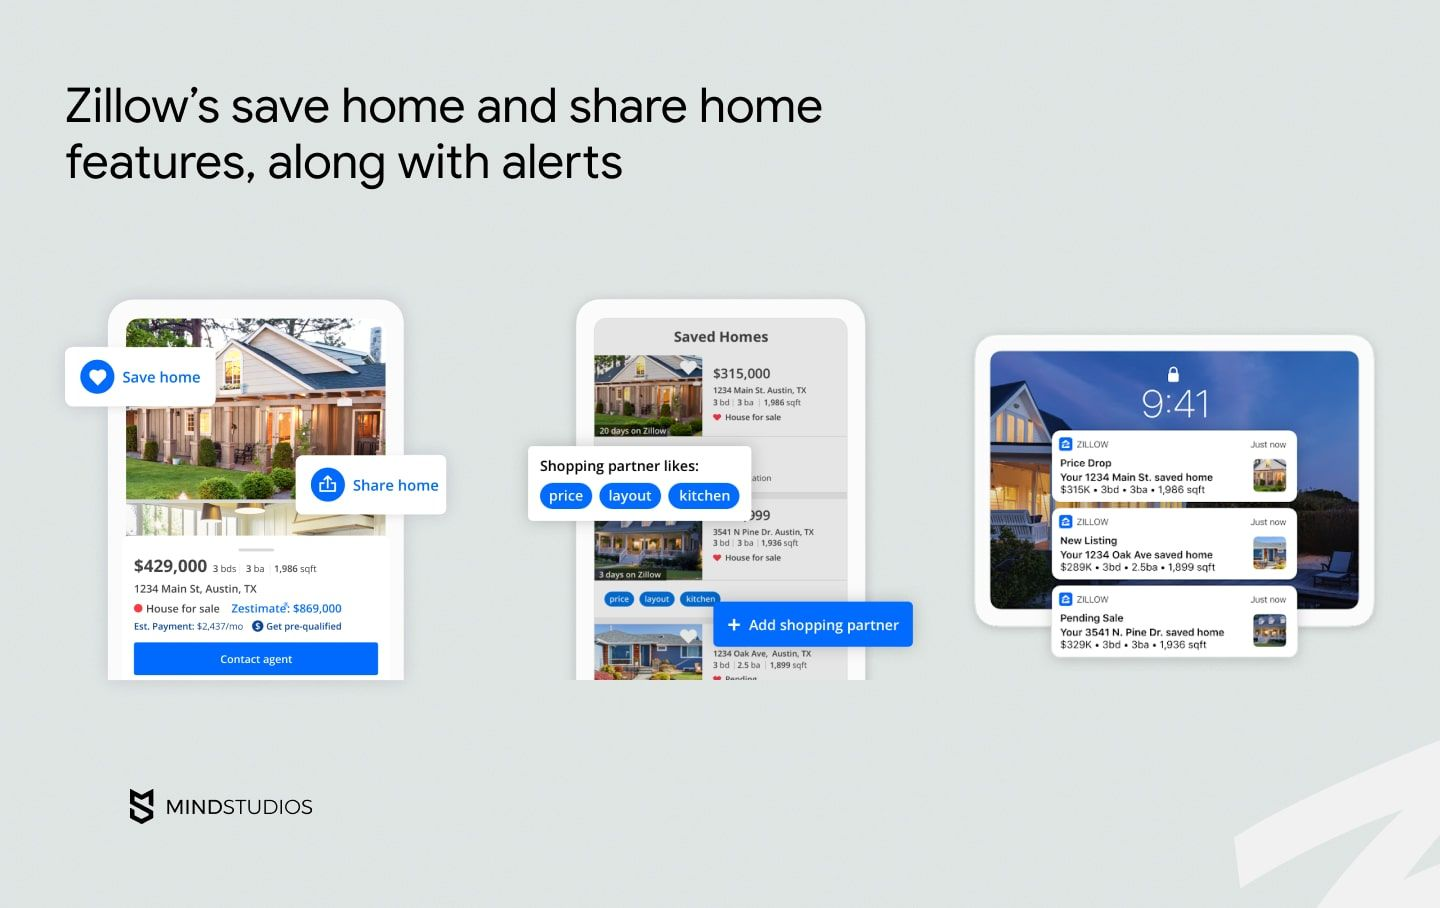 Zillow's save home and share home features, along with alerts